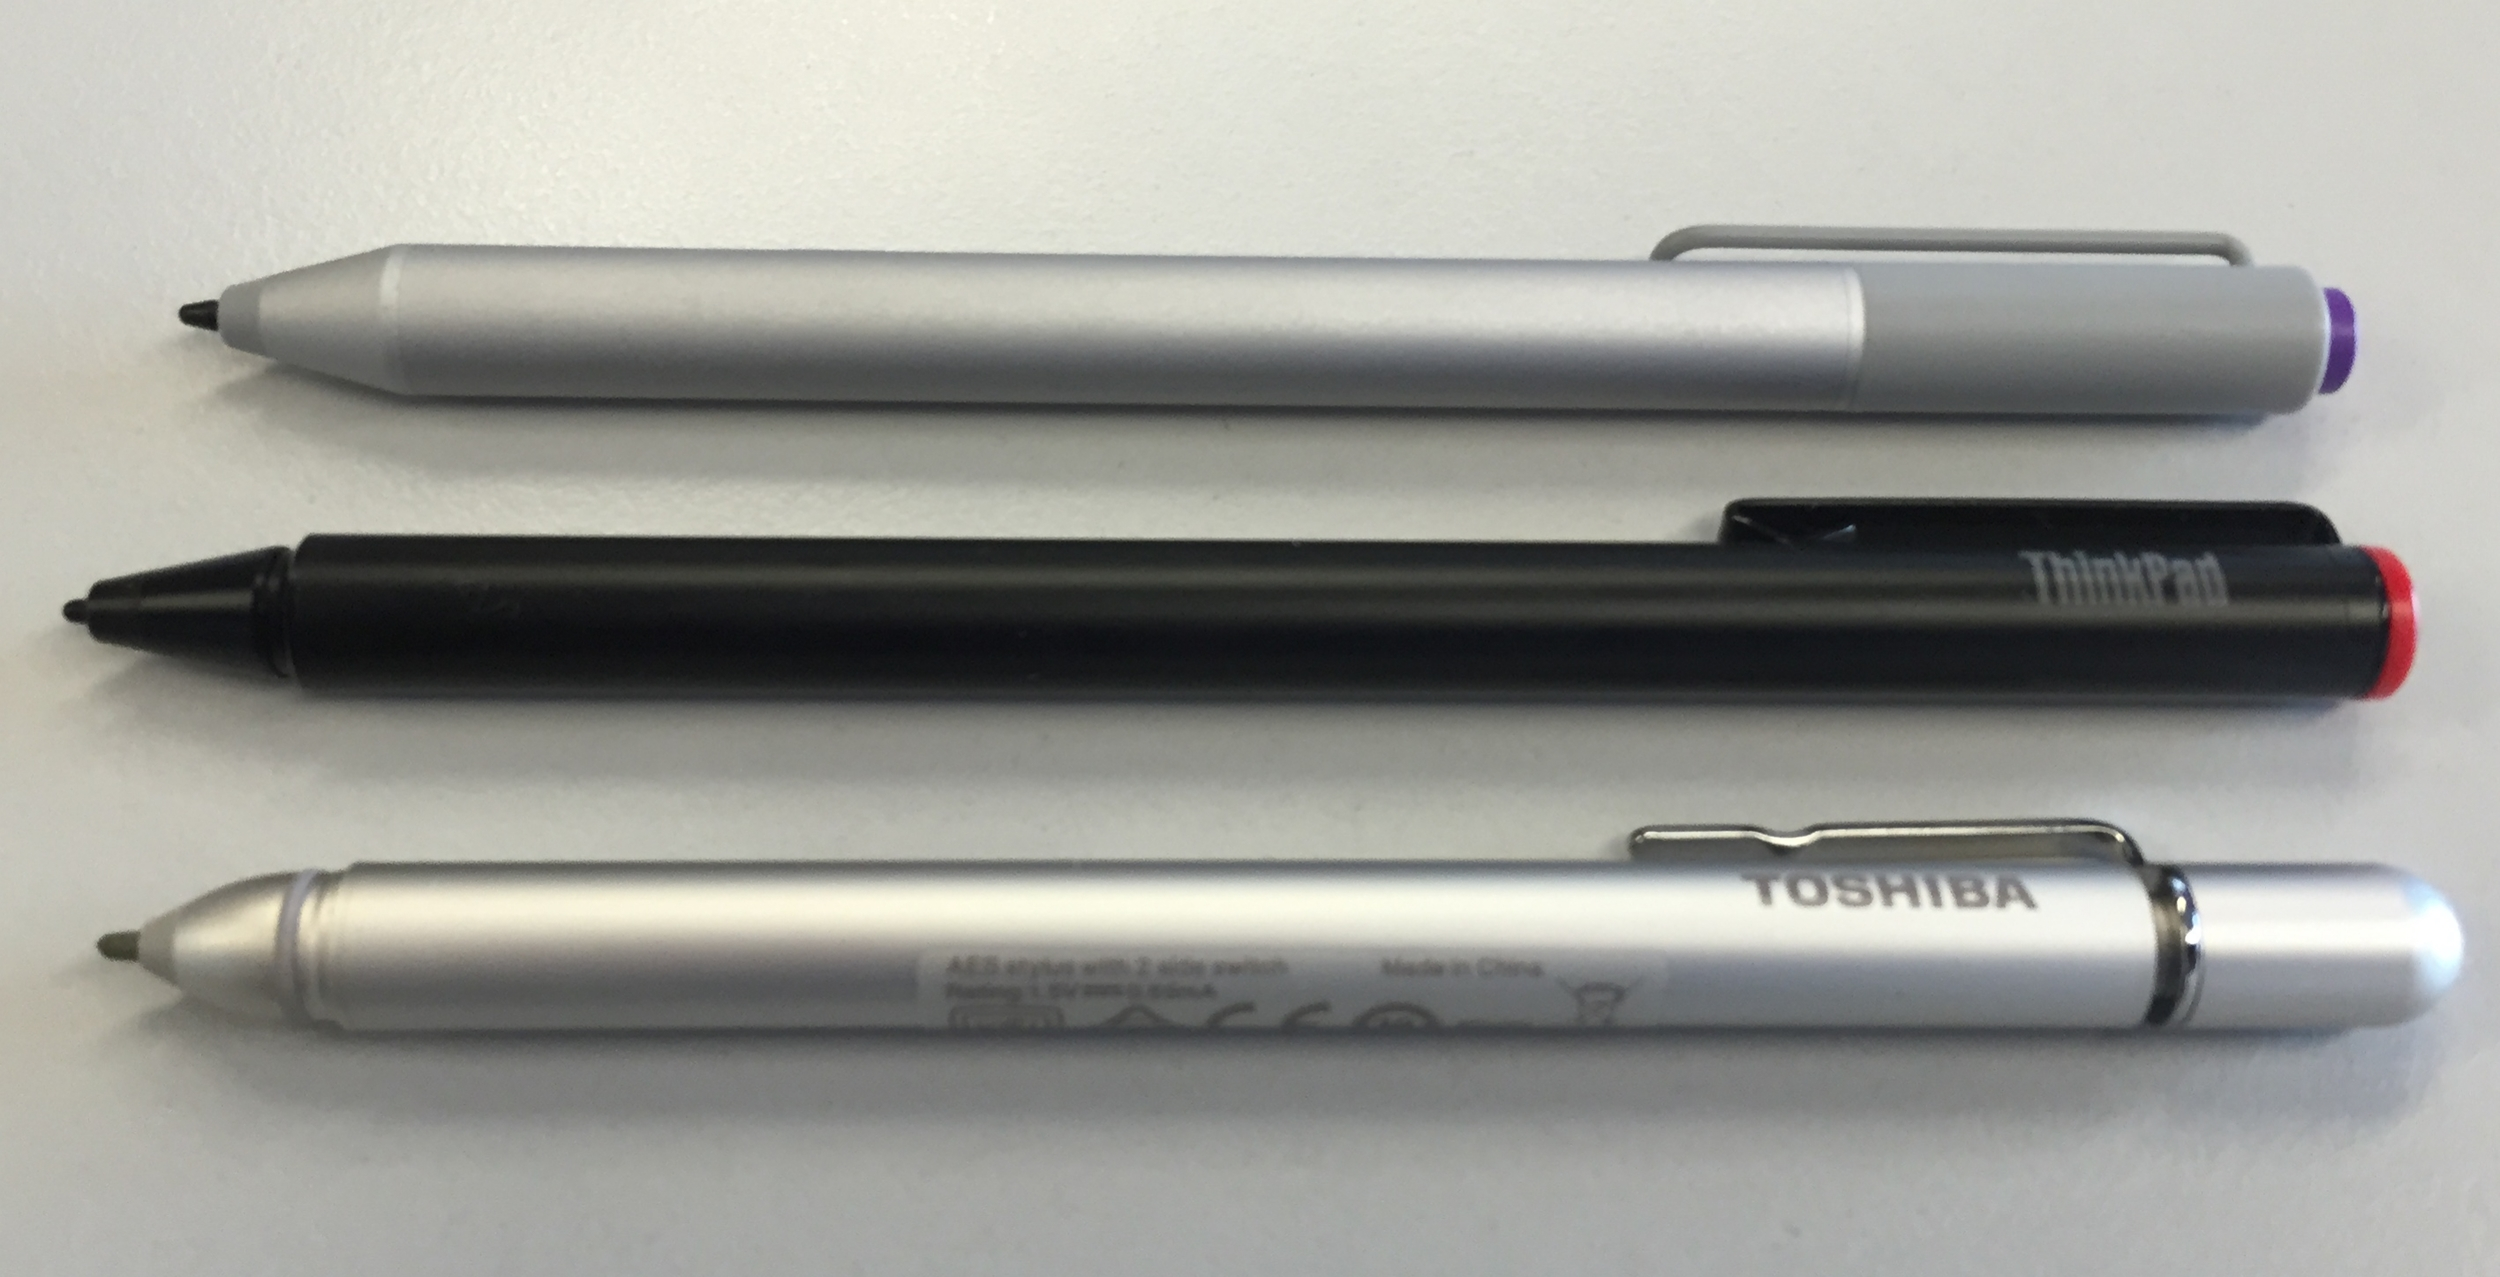 UPDATED: Lenovo's elusive Thinkpad Active Capacitive Pen is